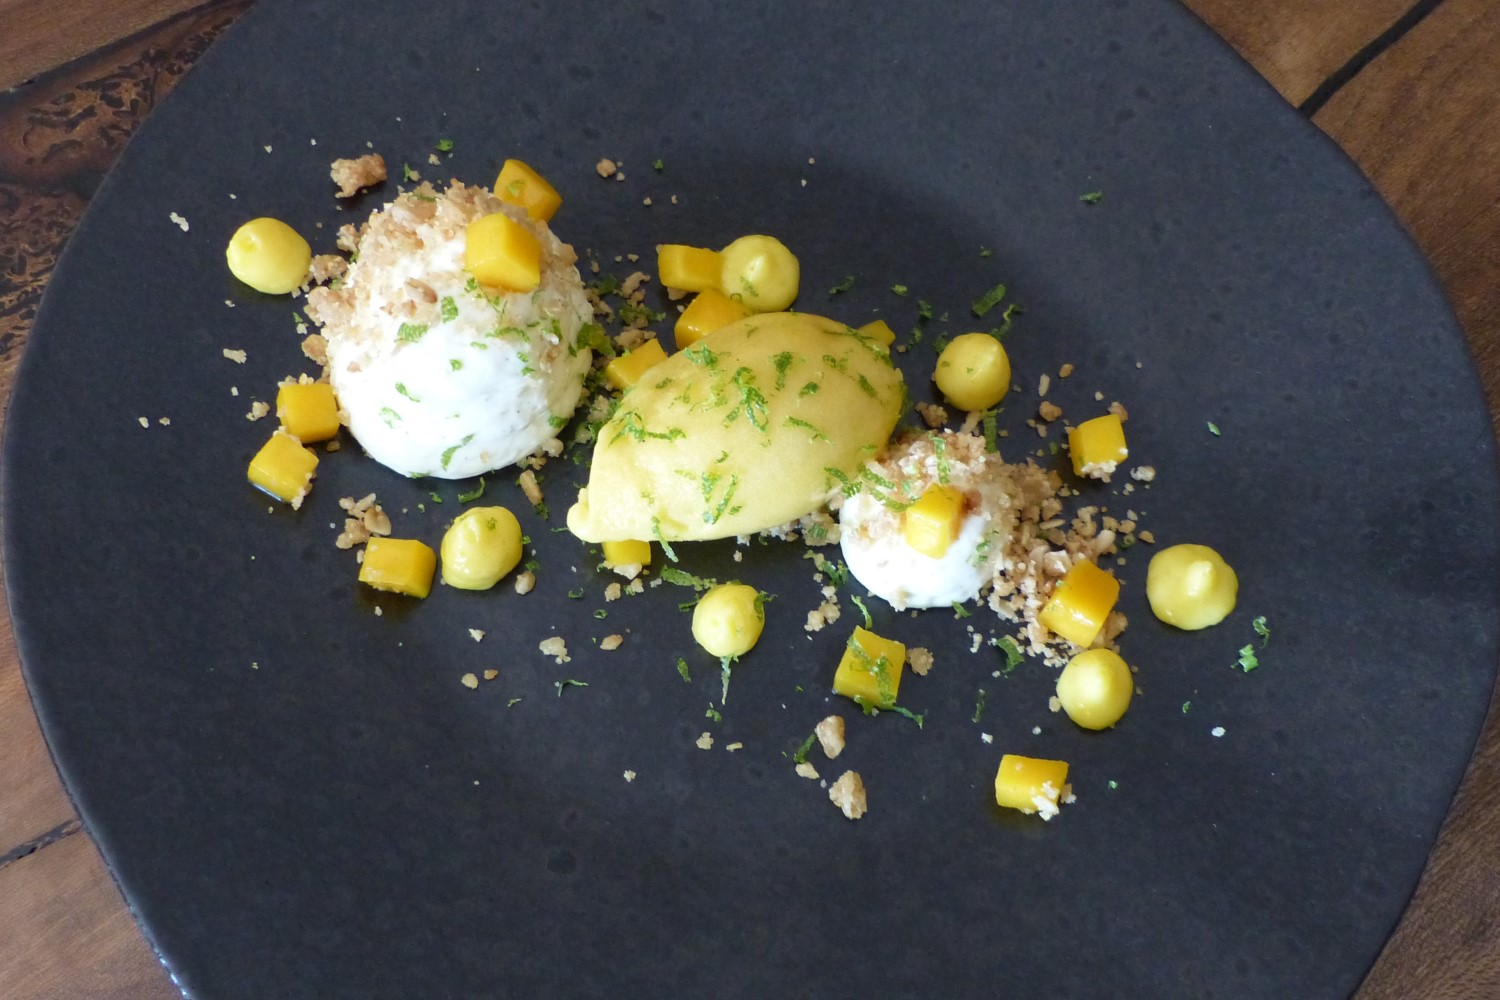 Deconstructed Cheesecake with Mango and Lemon